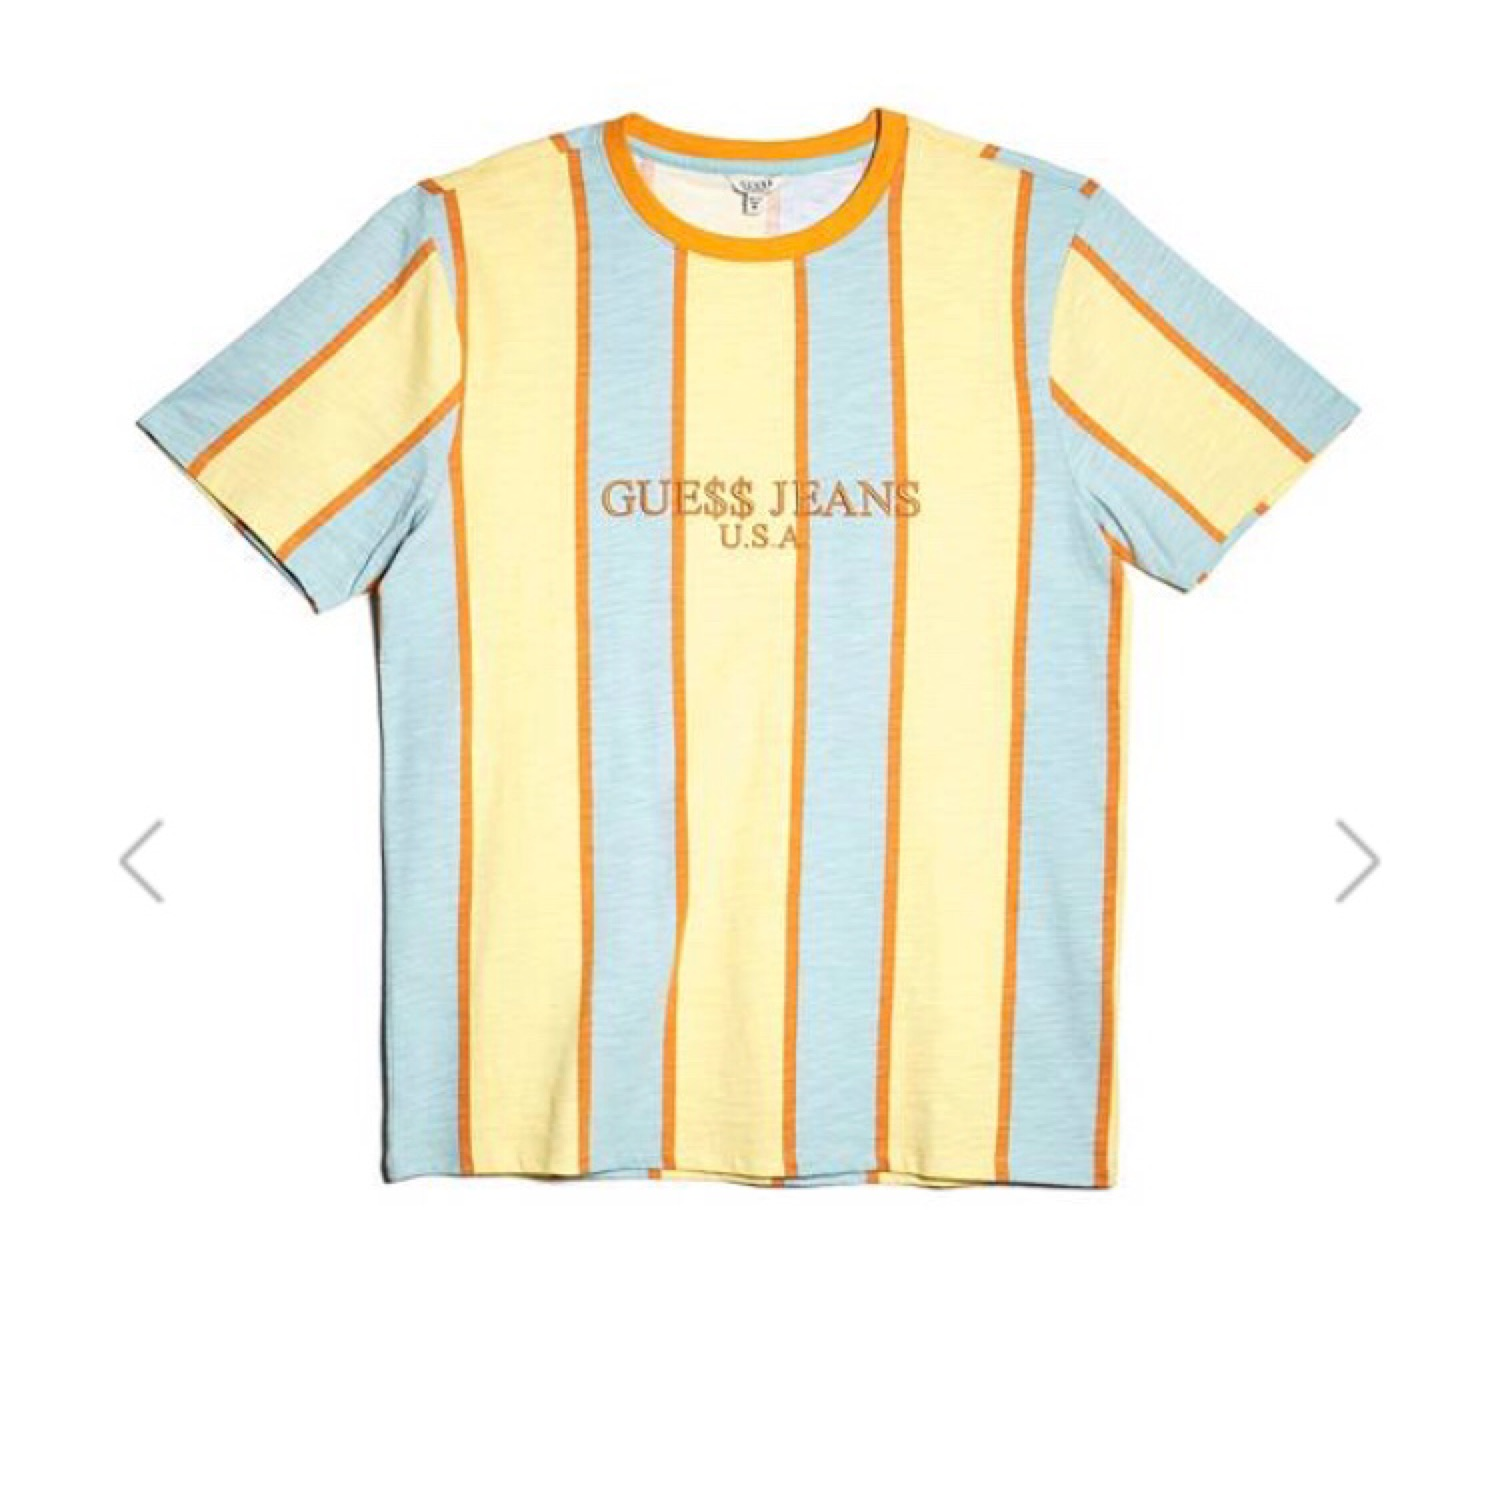 6f4eb6e381cd Guess Jeans Shirt Striped Yellow